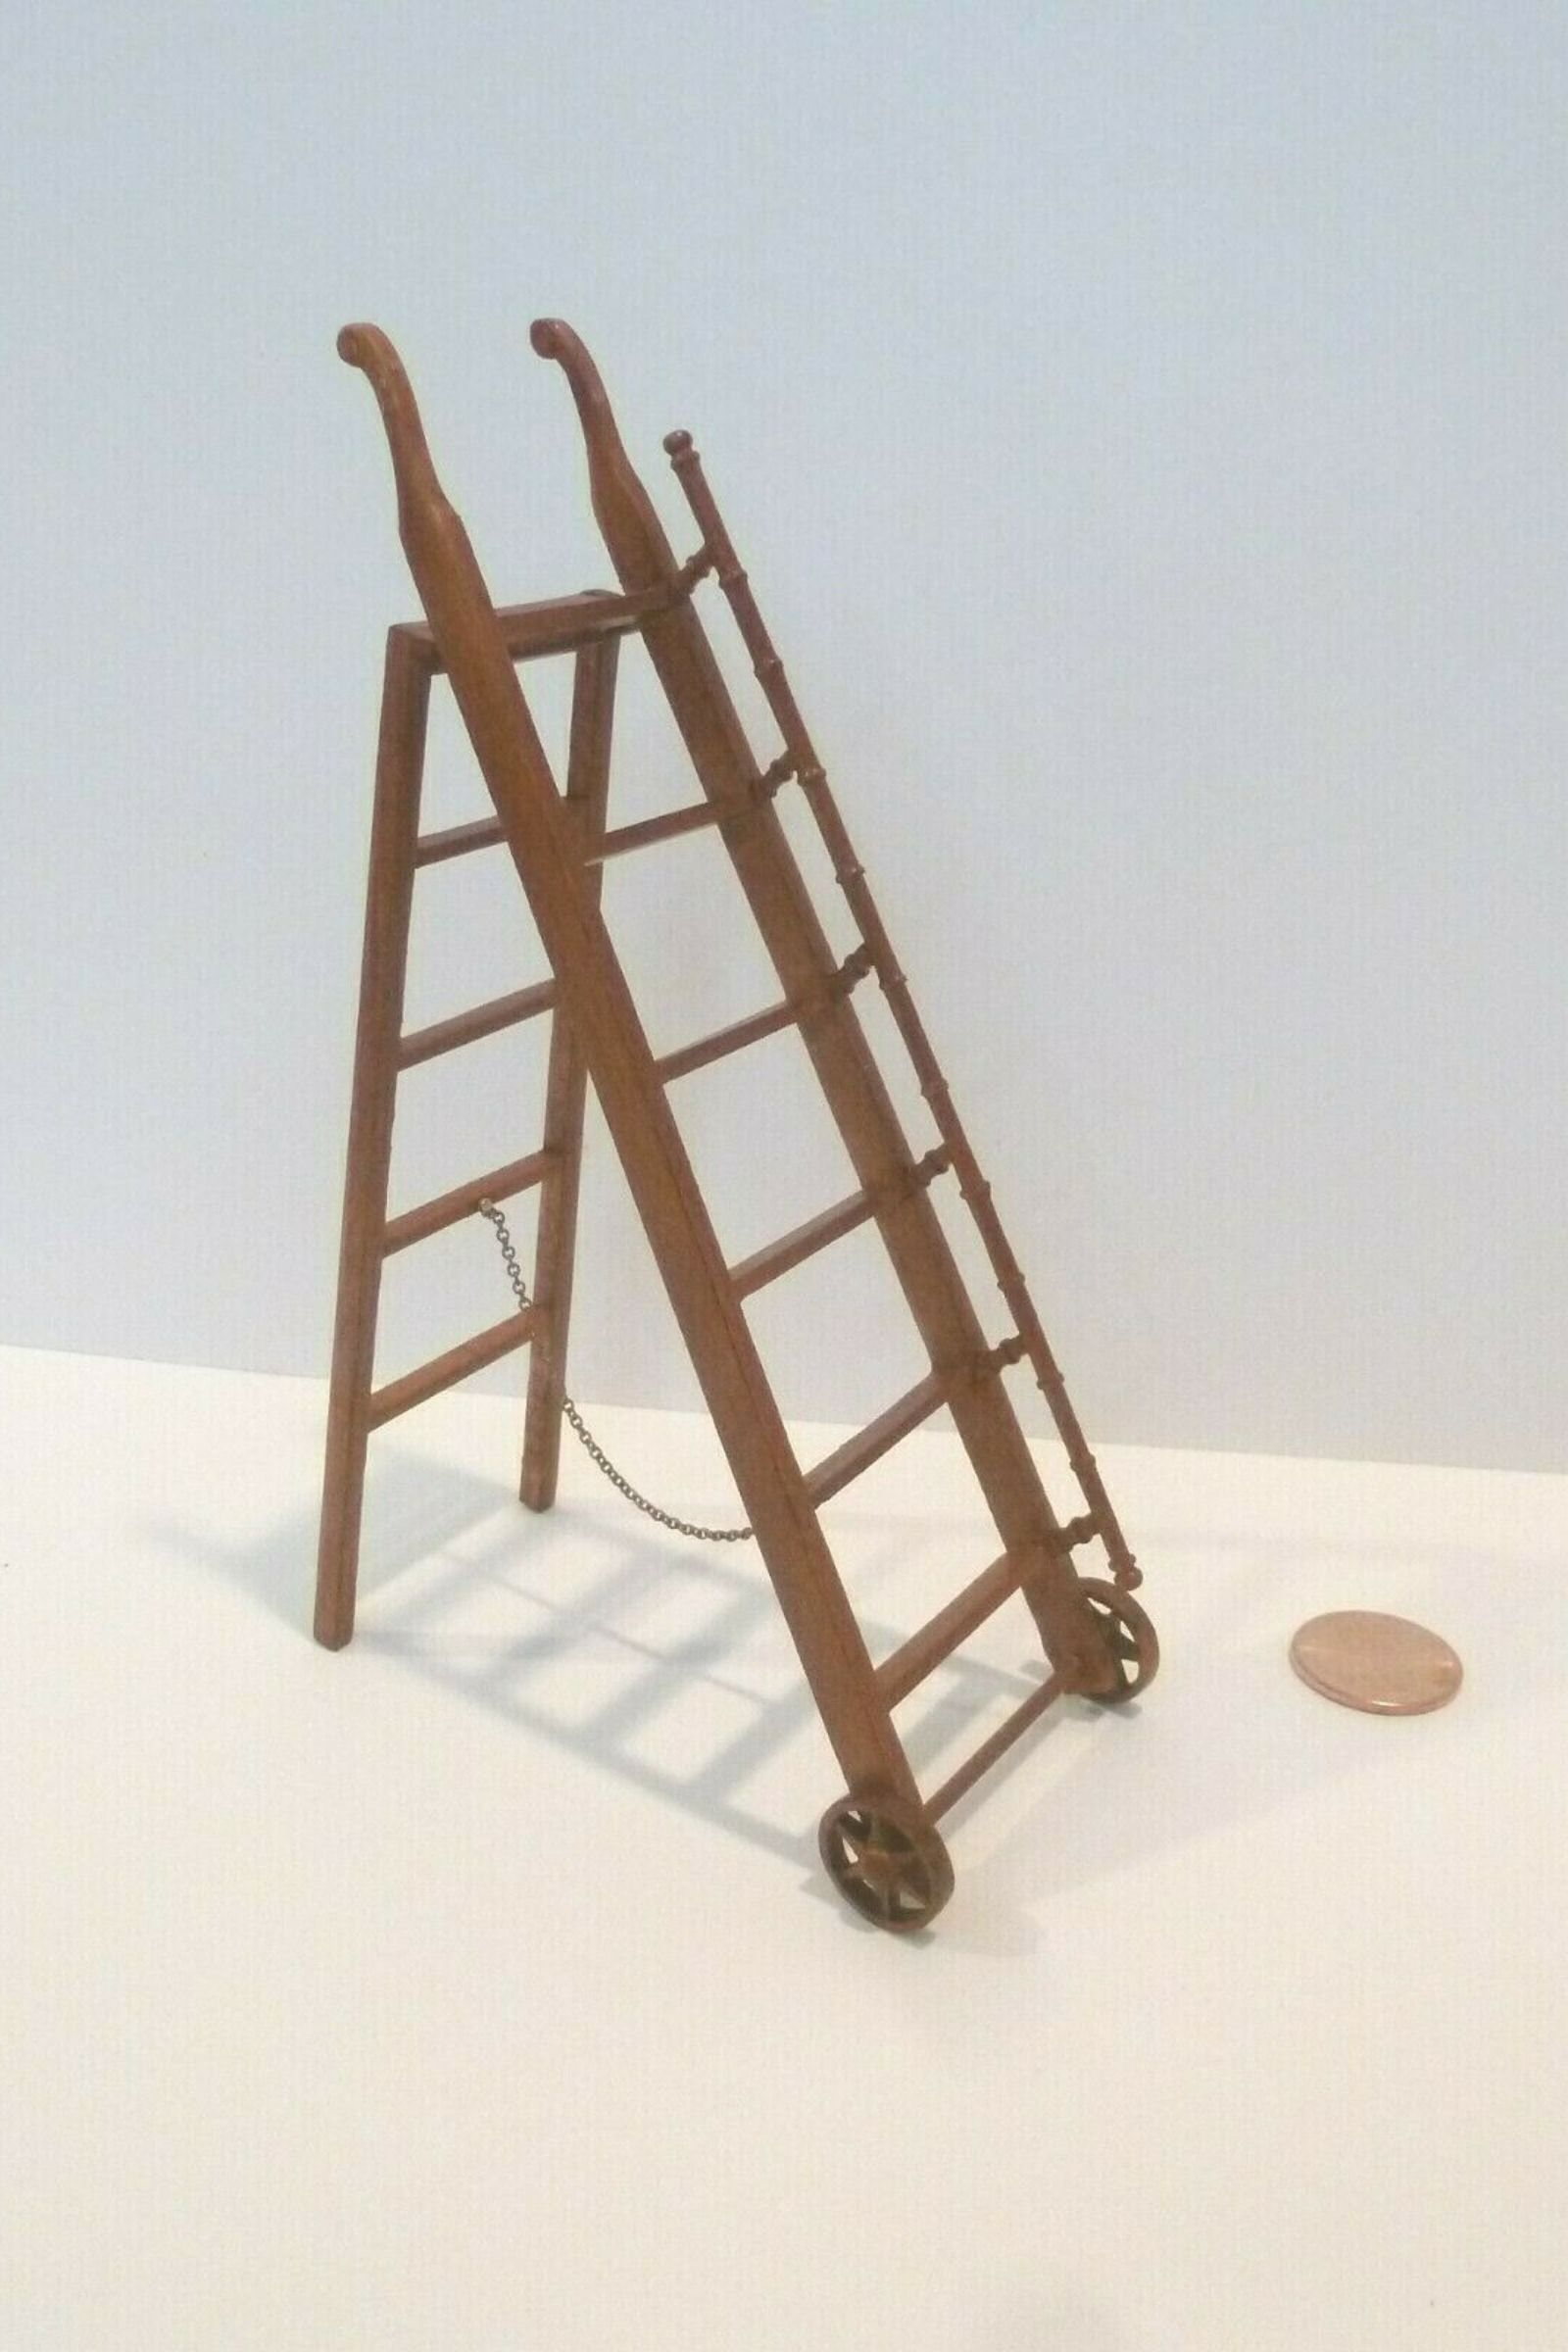 MDF Wood Ladder Staircase Embelishments for Garden Decor//Dollhouse Miniature